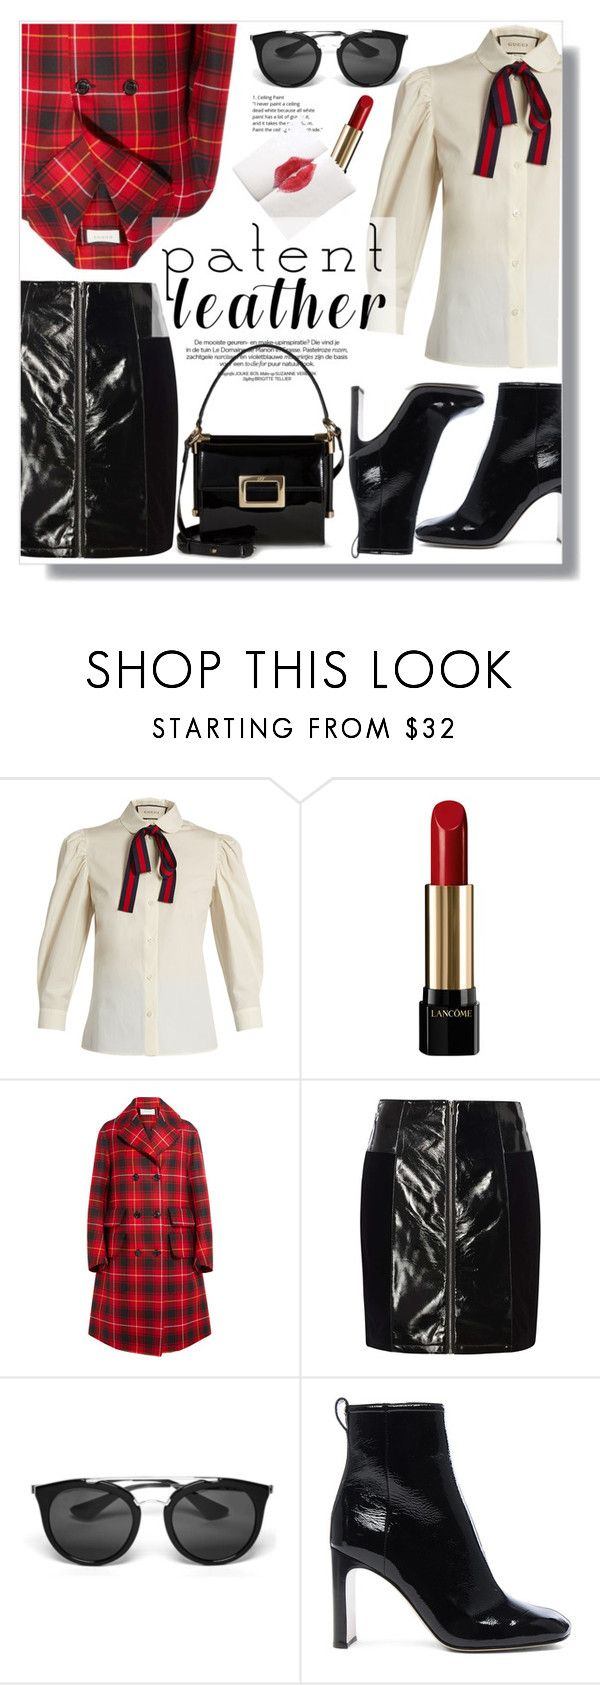 """City Slickers: Patent Leather"" by yoo-q ❤ liked on Polyvore featuring Gucci, Lancôme, Dorothy Perkins, Prada, rag & bone, Roger Vivier, patentleather and contestentry"